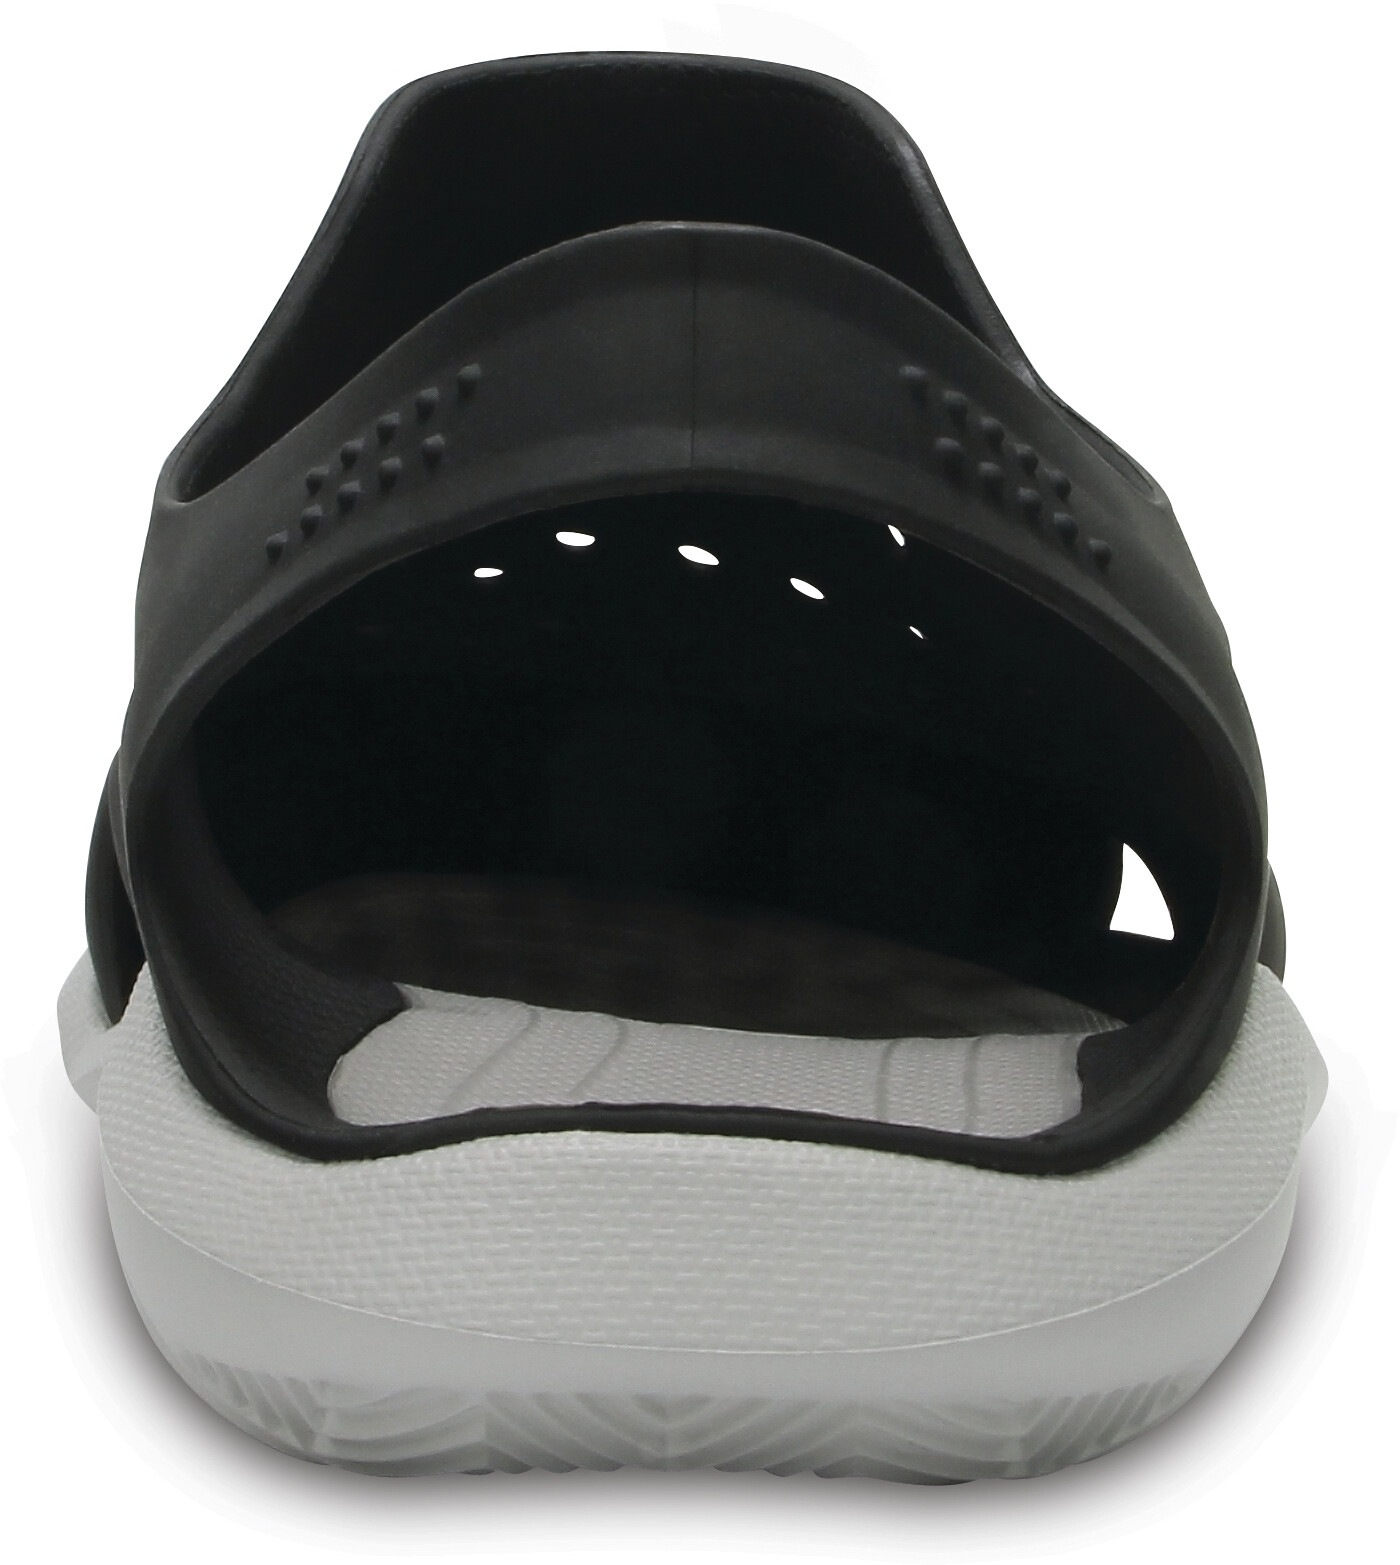 b6edc3196e59b9 Crocs Swiftwater Wave Sandals Men white black at Addnature.co.uk